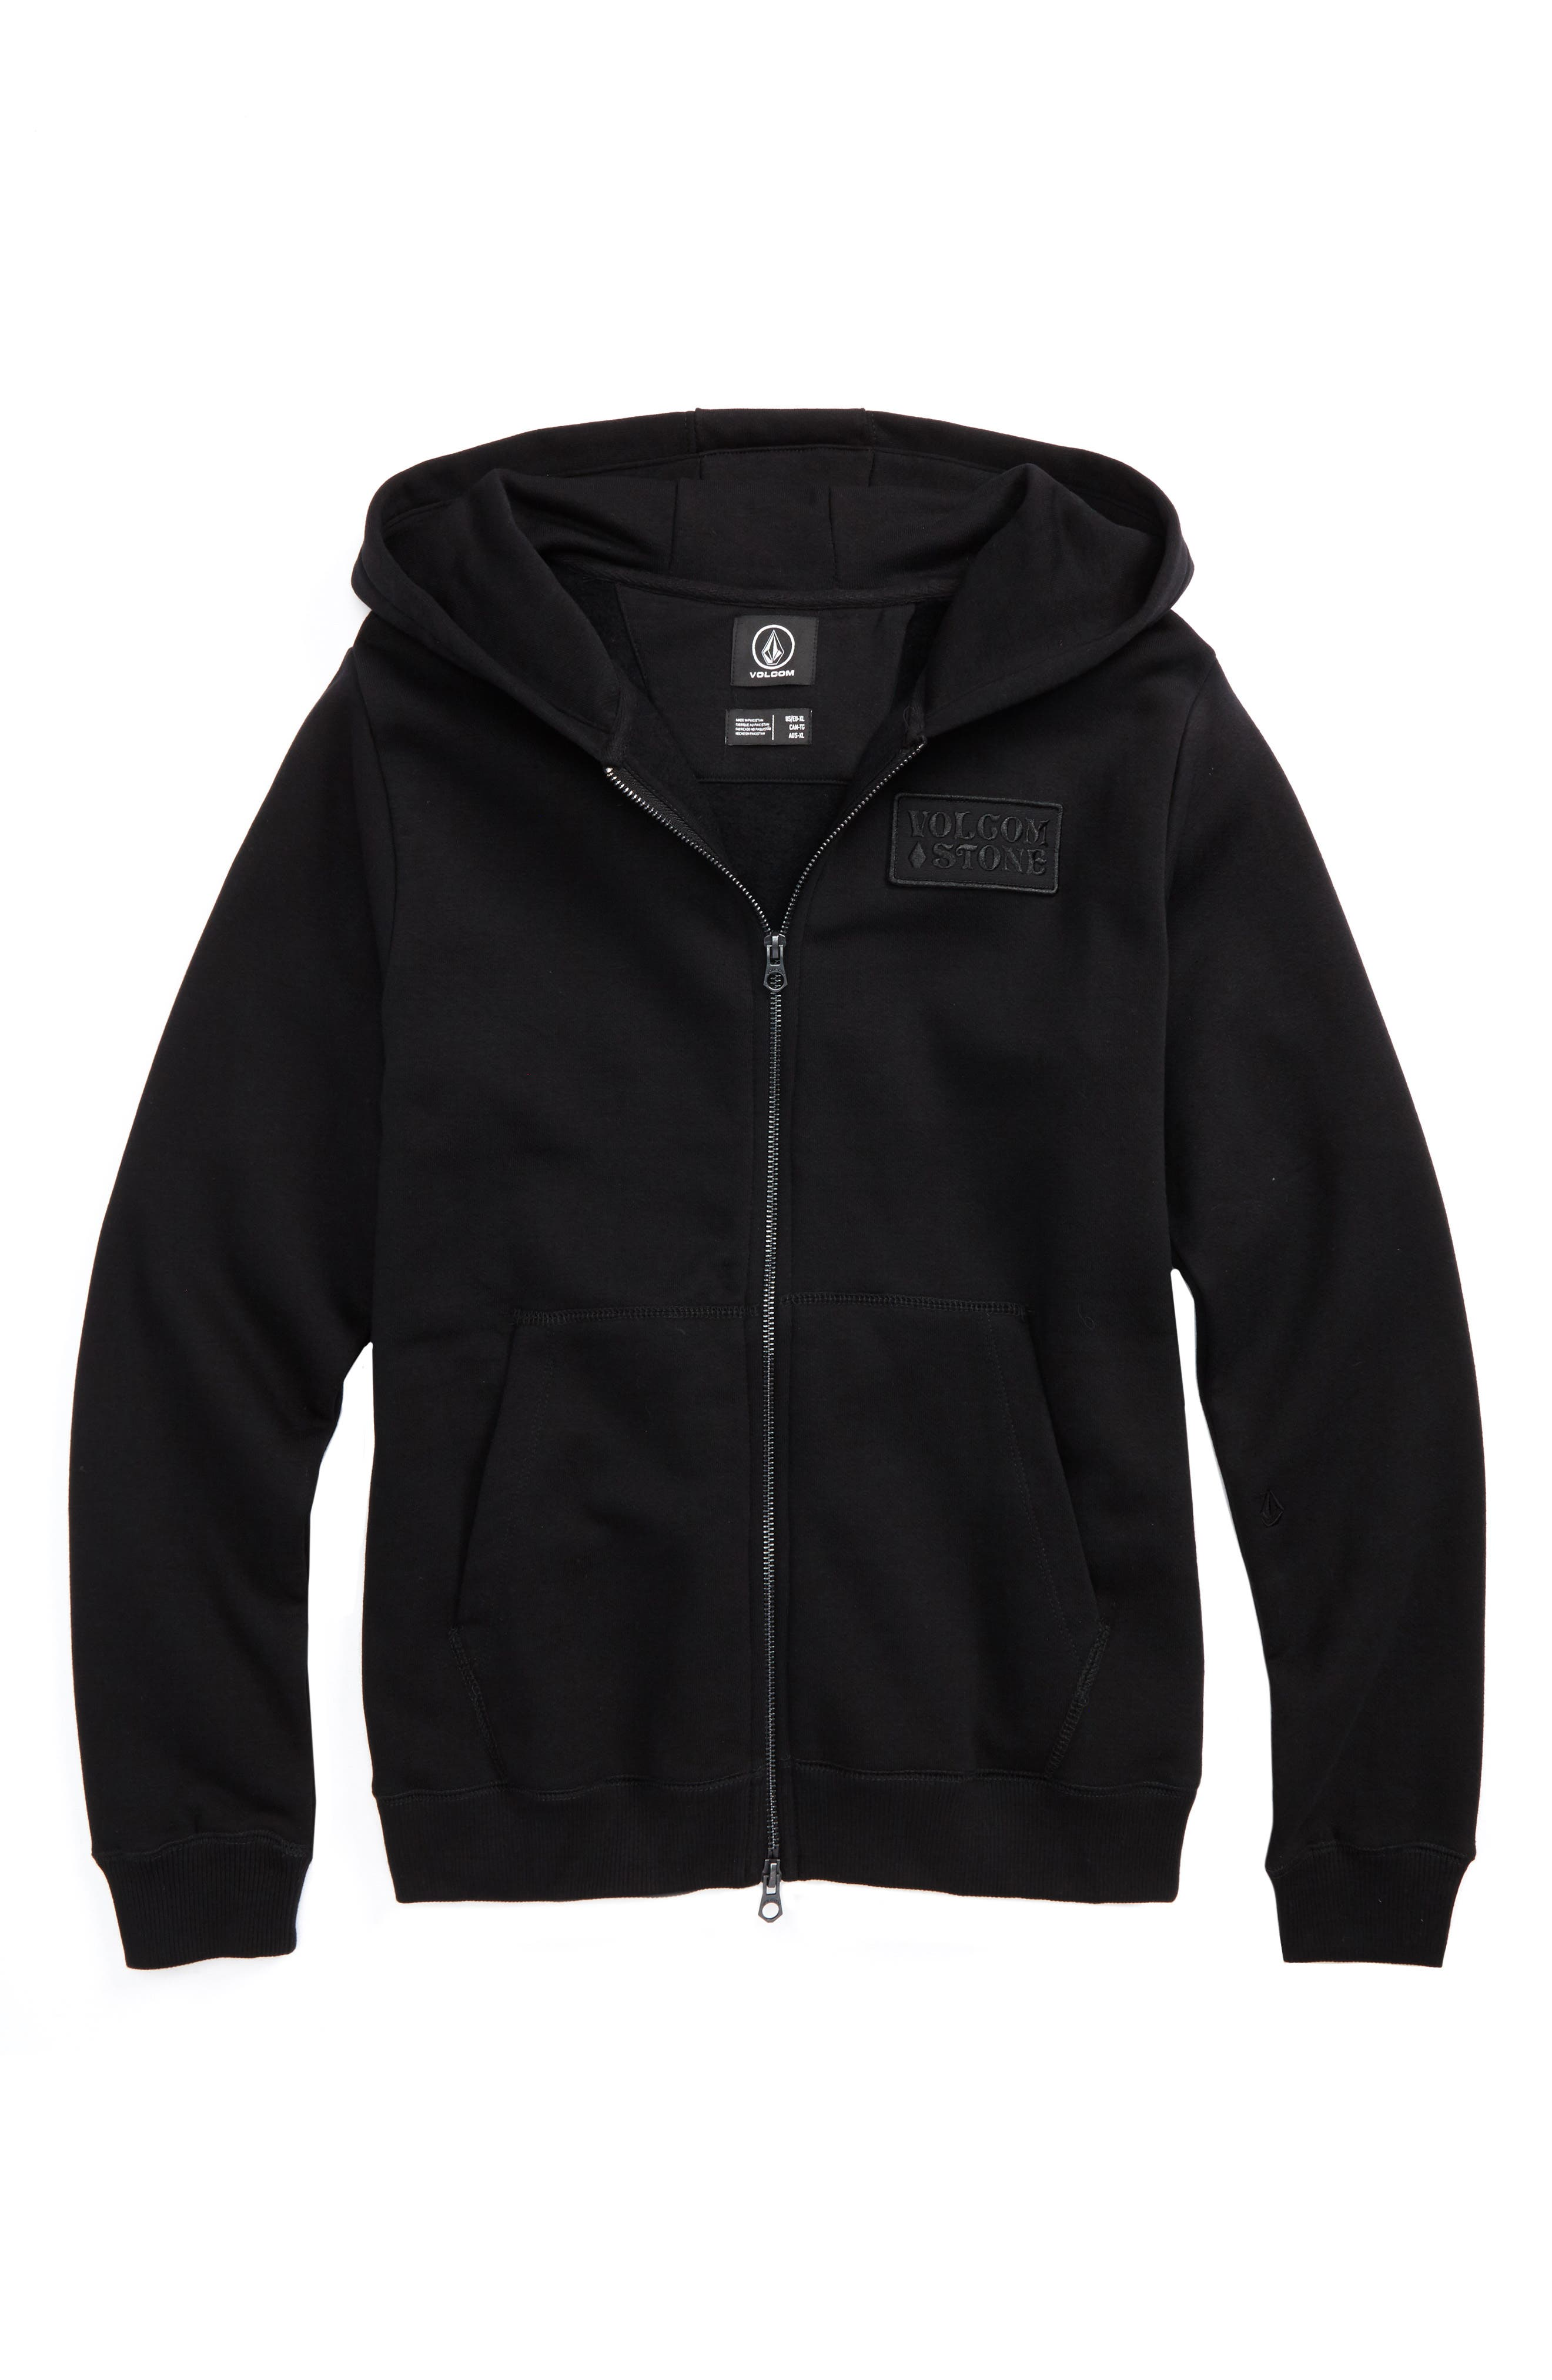 Alternate Image 1 Selected - Volcom Shop Fleece Hoodie (Big Boys)